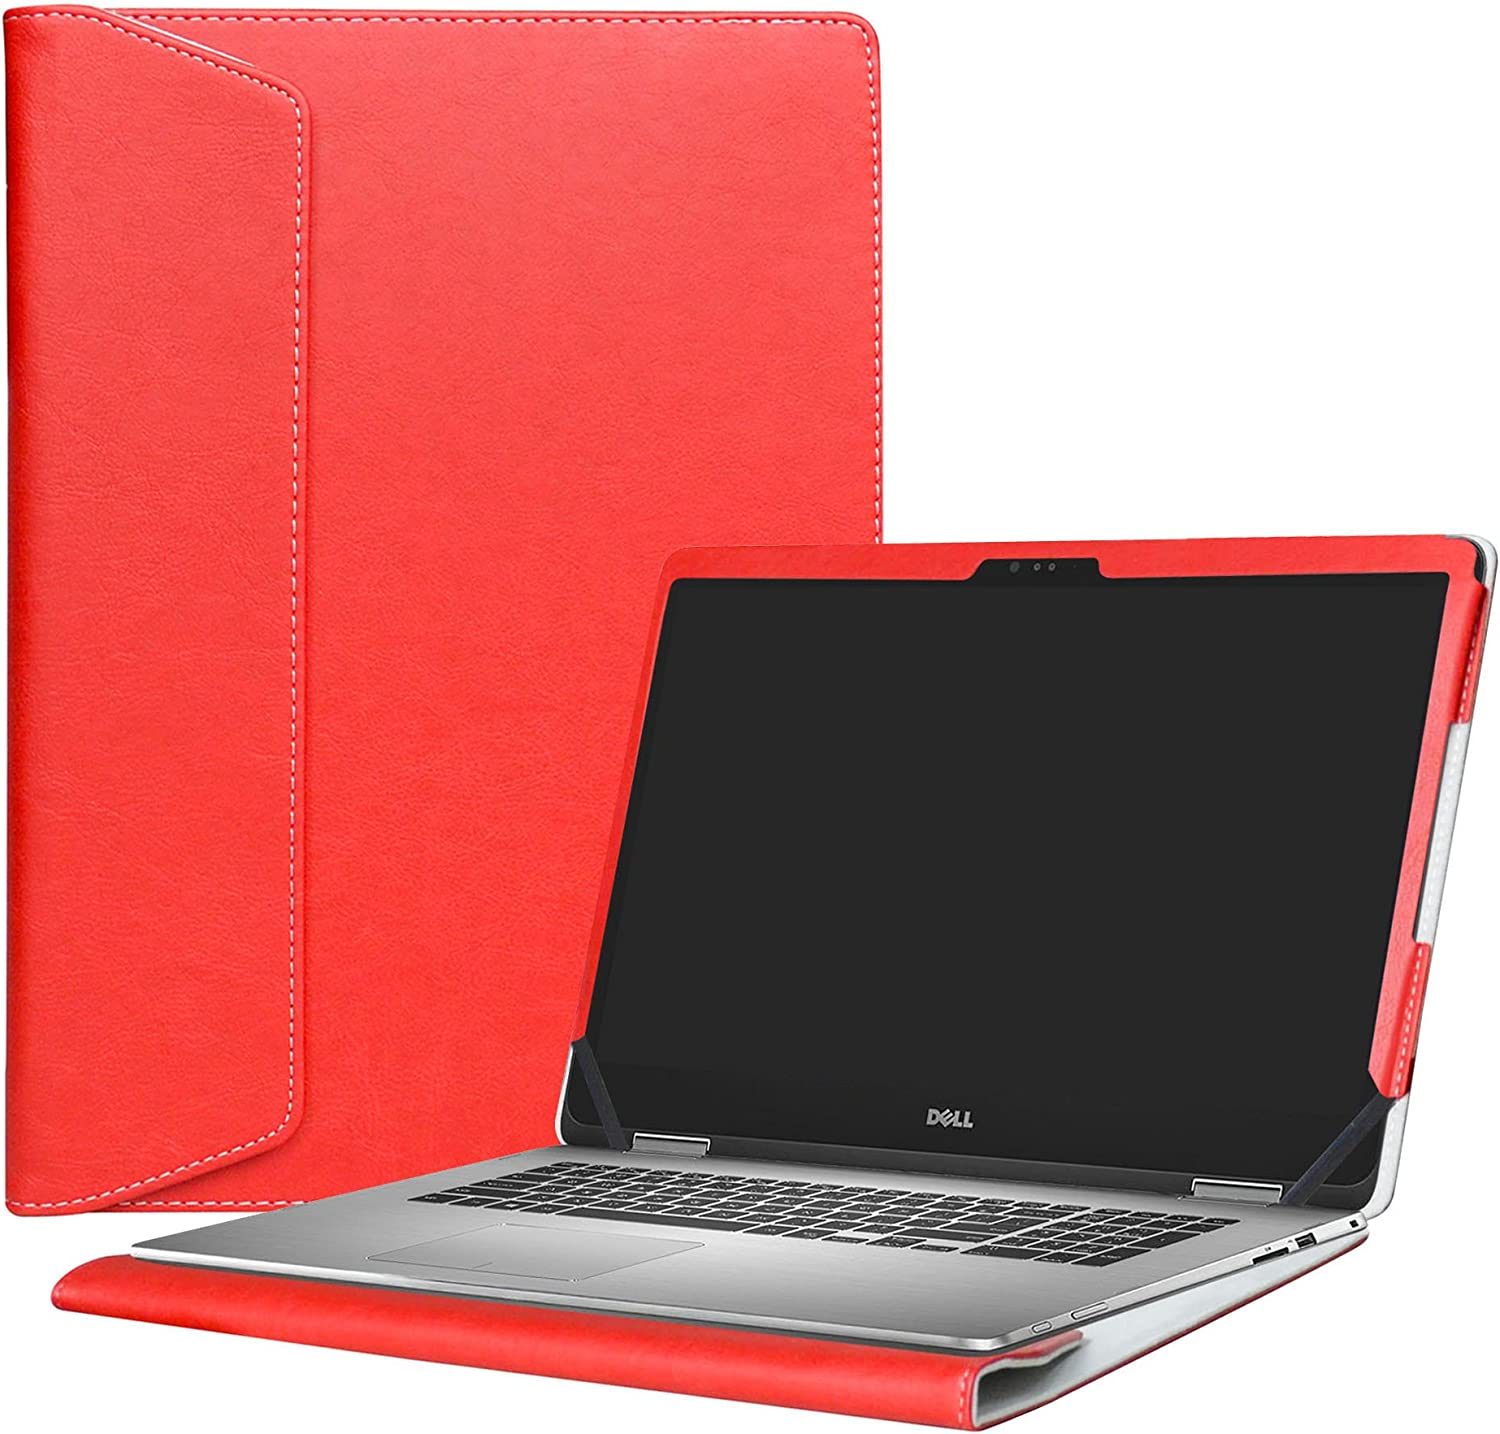 "Alapmk Protective Case Cover For 15.6"" Dell Inspiron 15 2-in-1 7573 i7573 & Inspiron 15 i7570 i7580 7570 7580 Laptop(Warning:Only fit model 7573 7570),Red"